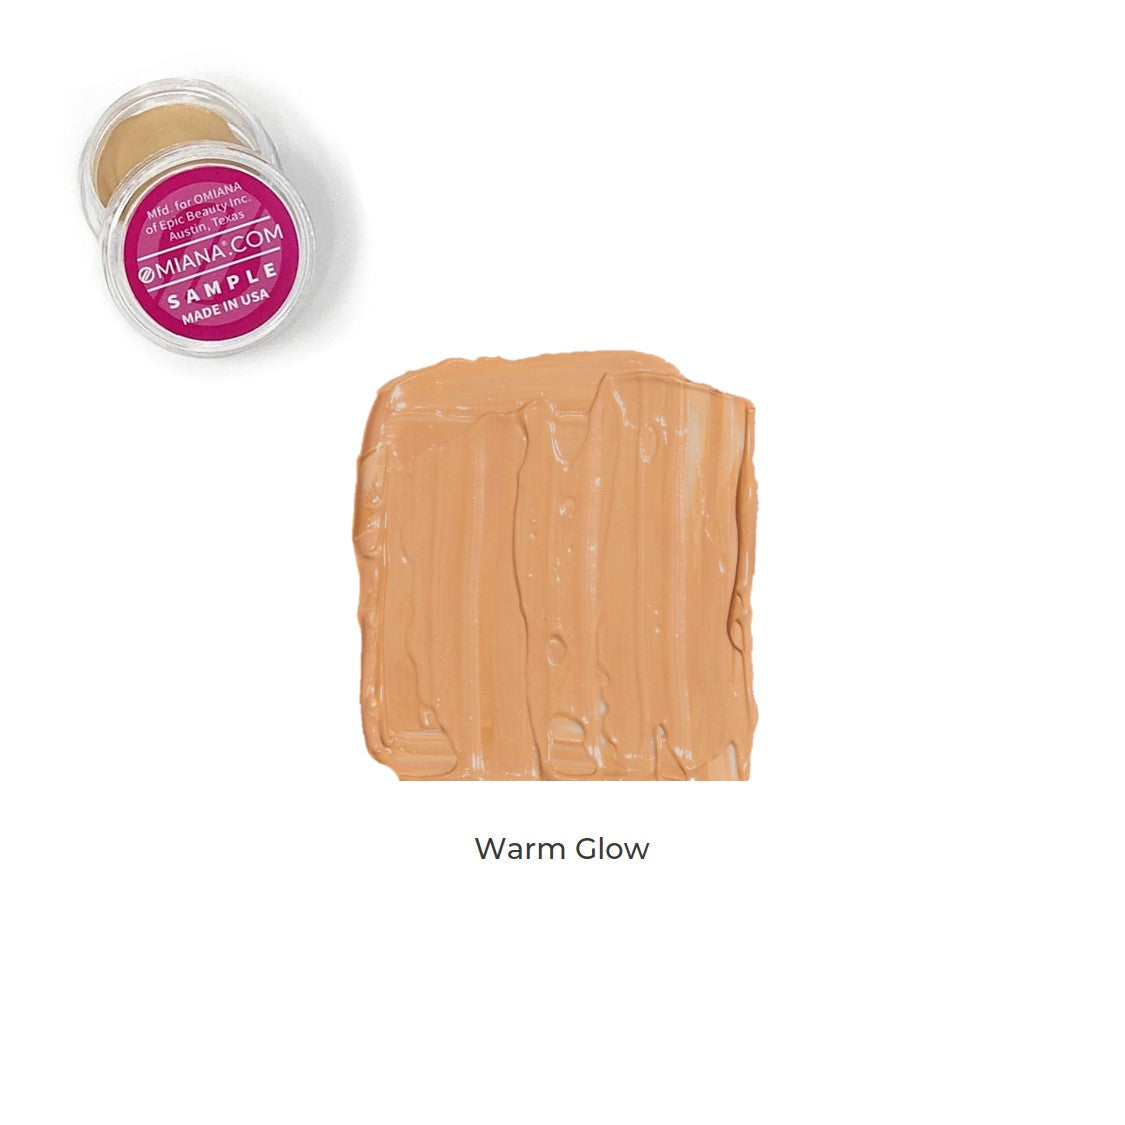 Velvet Matte Liquid Foundation Sample - Warm Glow